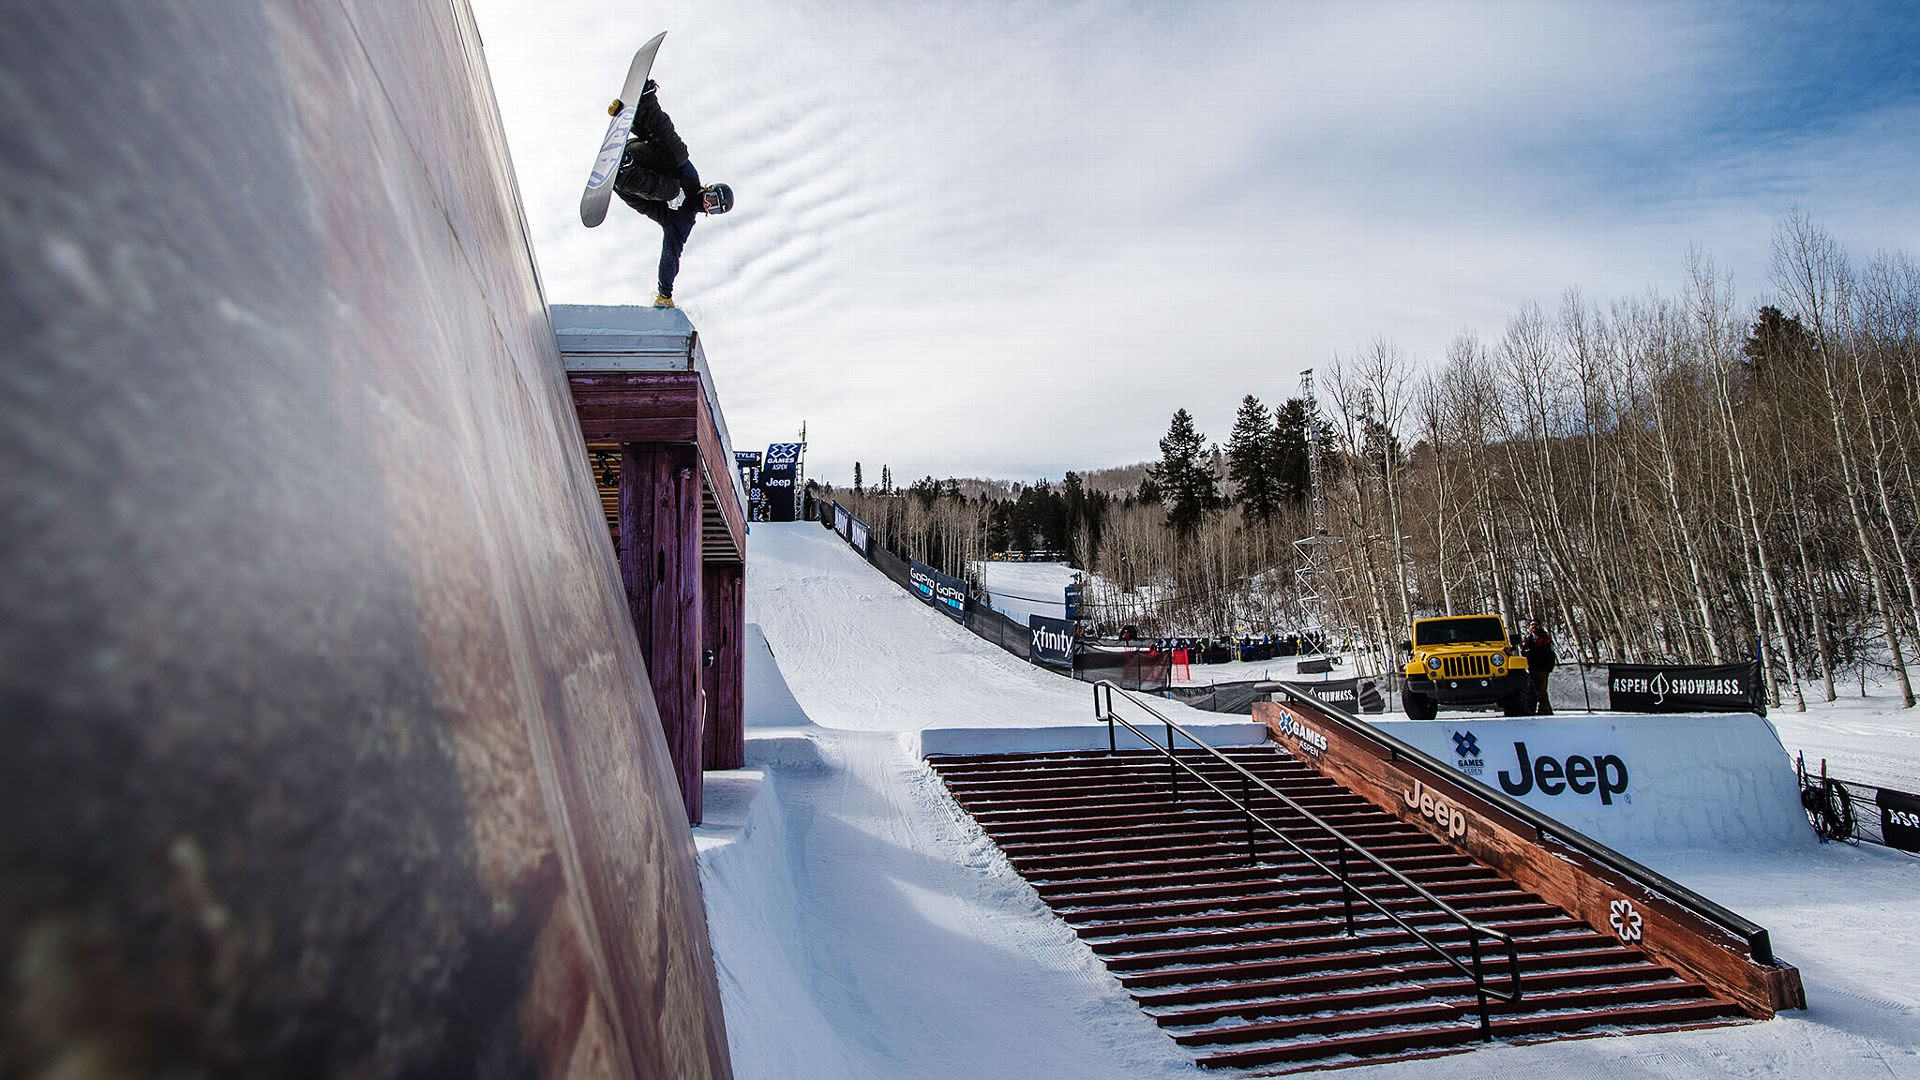 X GAMES ASPEN 2016 (EXTREME SPORTS)